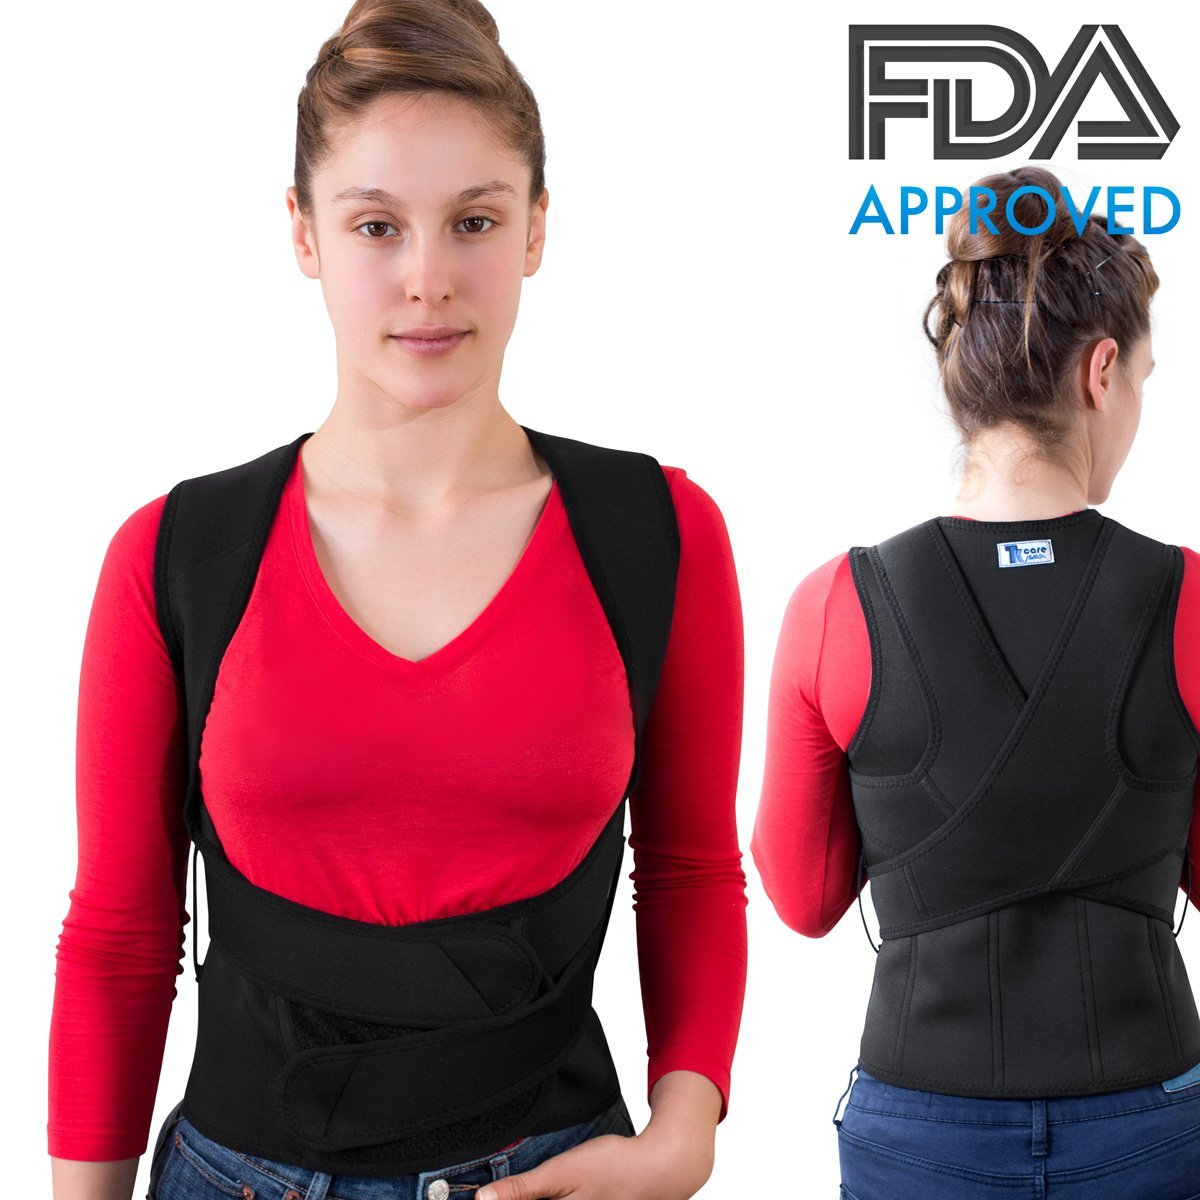 THE ULTIMATE Posture Corrector for Women & Men Under Clothes   Effective & Comfortable   Back Brace for Slouching & Hunching -Shoulders Clavicle Support   Upper & Lower Back Supports   Body Therapy by TK Care Pro. (Image #8)